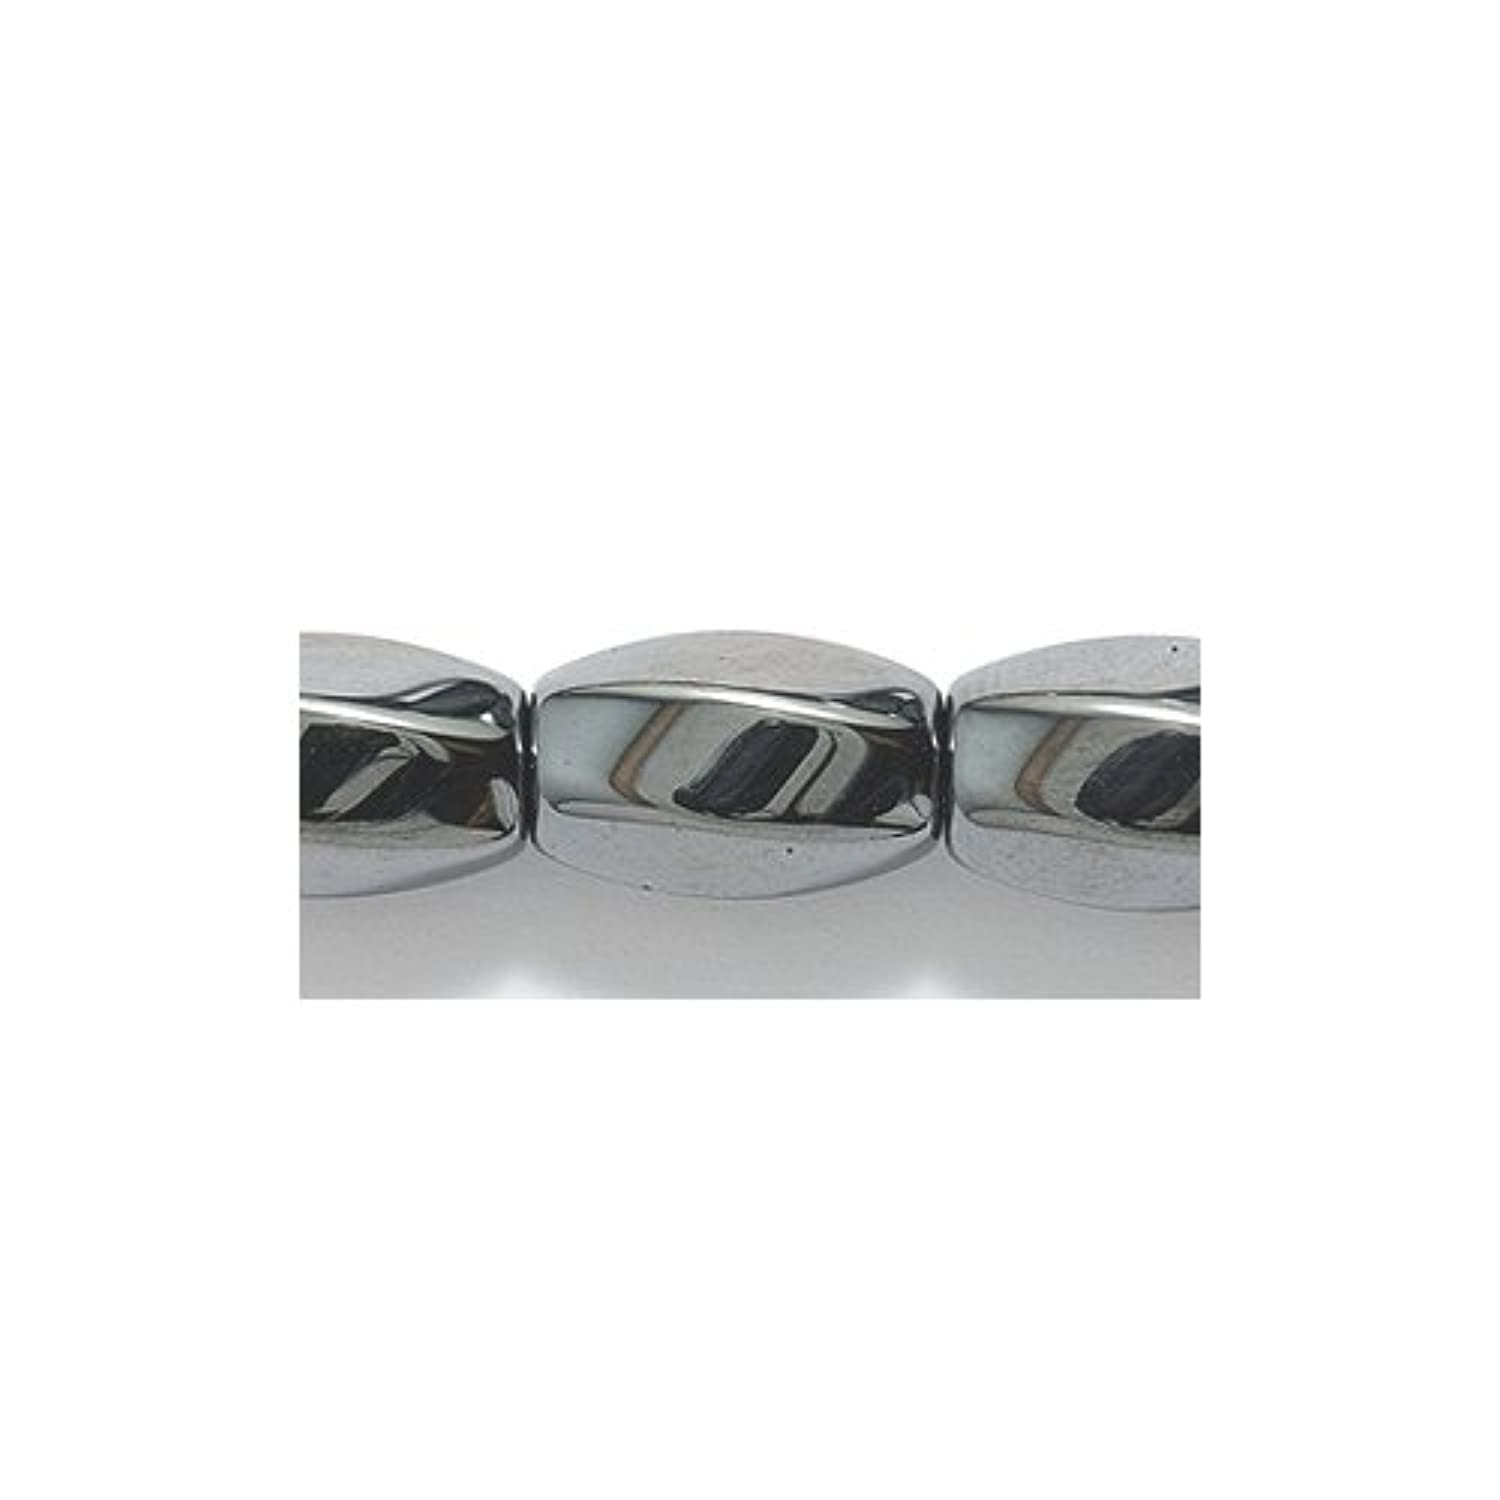 Shipwreck Beads Hematite Oval Bead, 6 Sided Twist 8 by 12-mm, 34-Piece Per Strand, 2-Strand/Pack tazlfy0508670